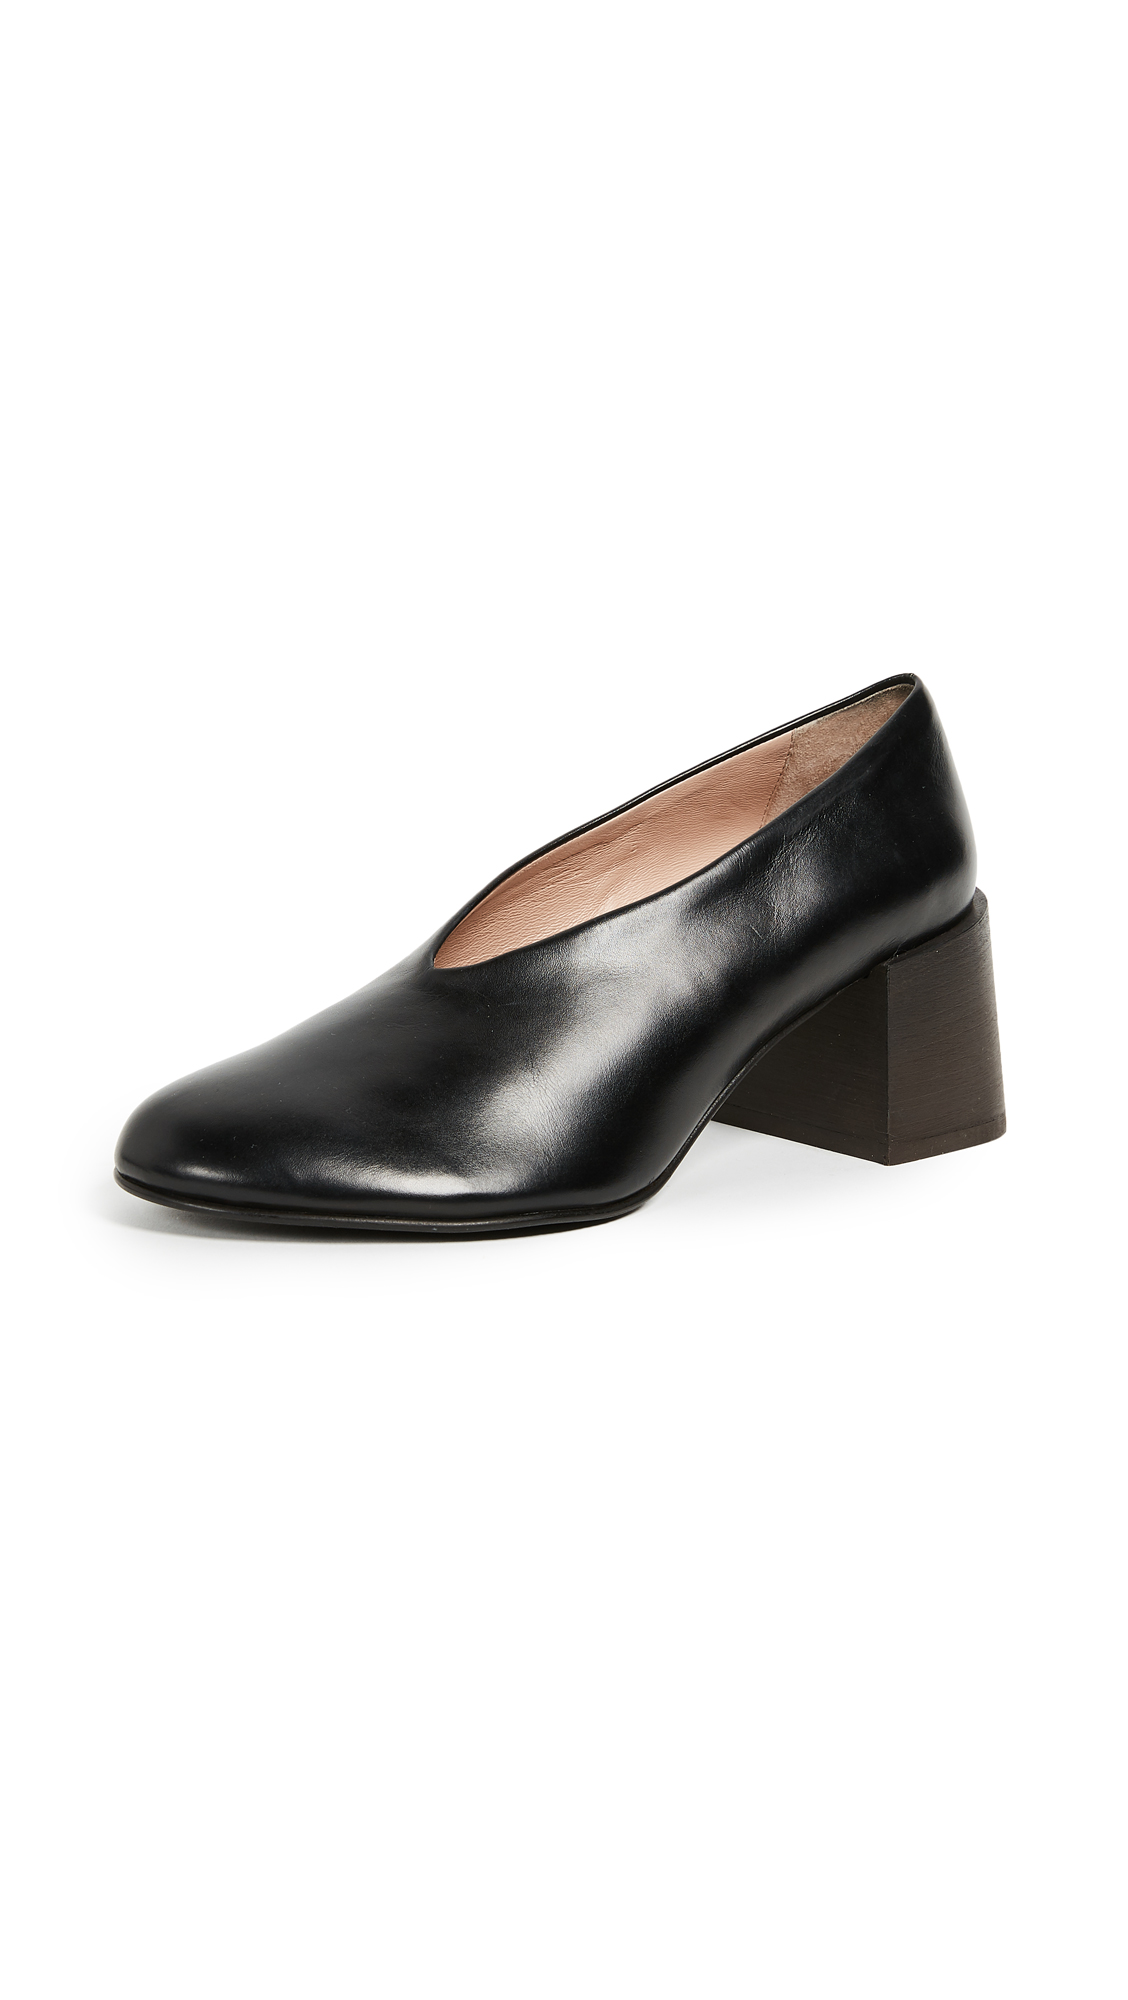 Acne Studios Sully Pumps